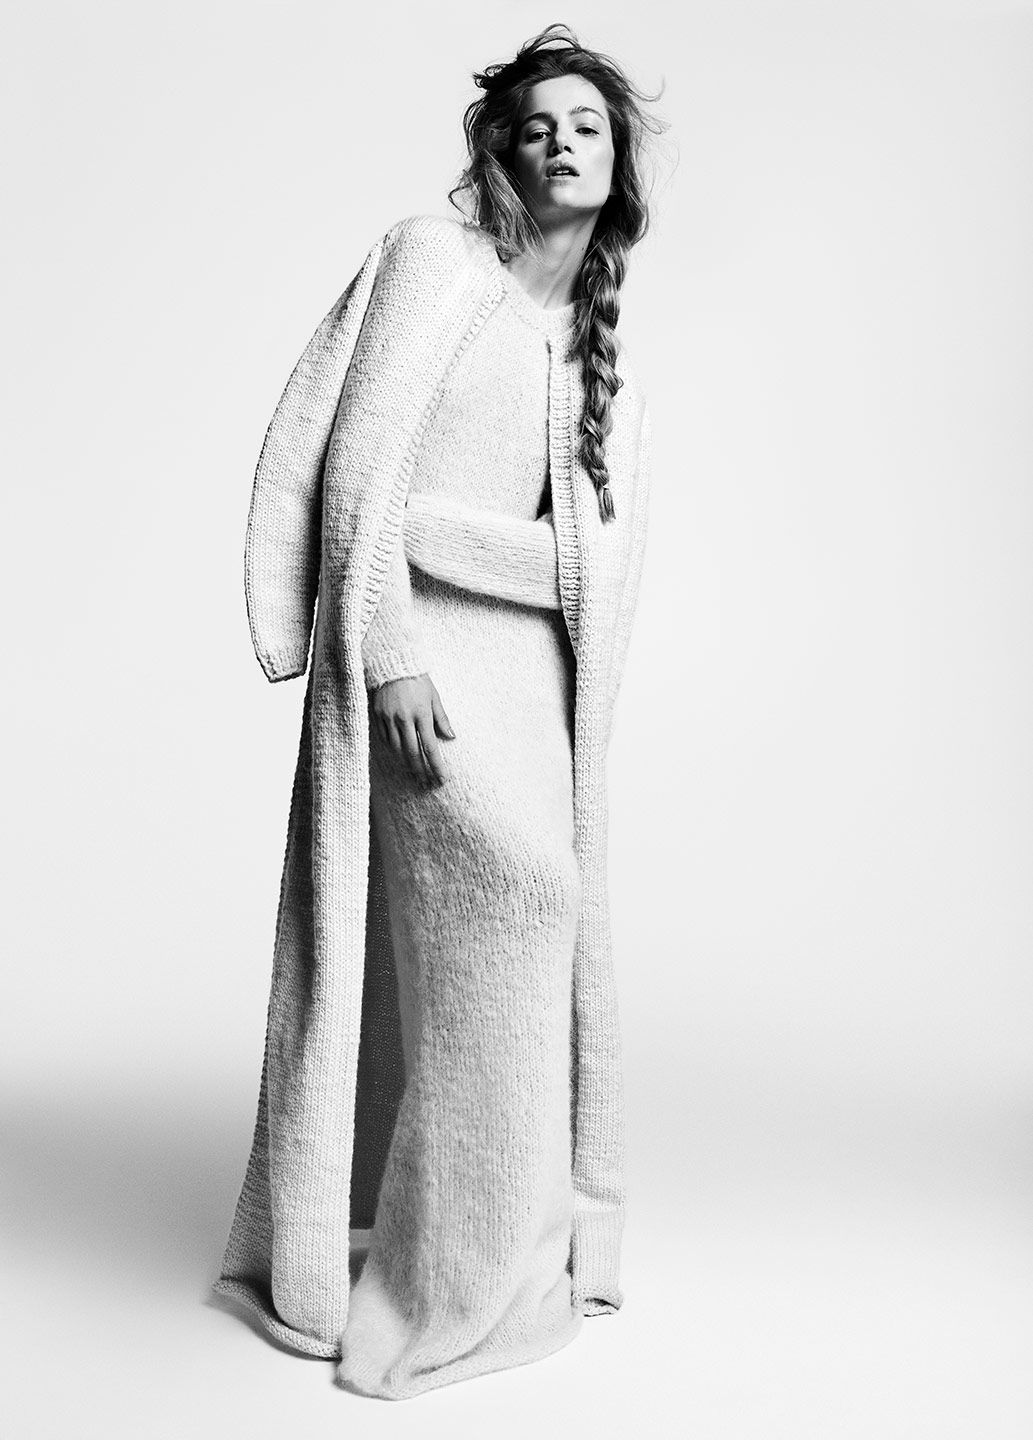 Nanna van Blaaderen — Knit design for fashion and home textiles ...